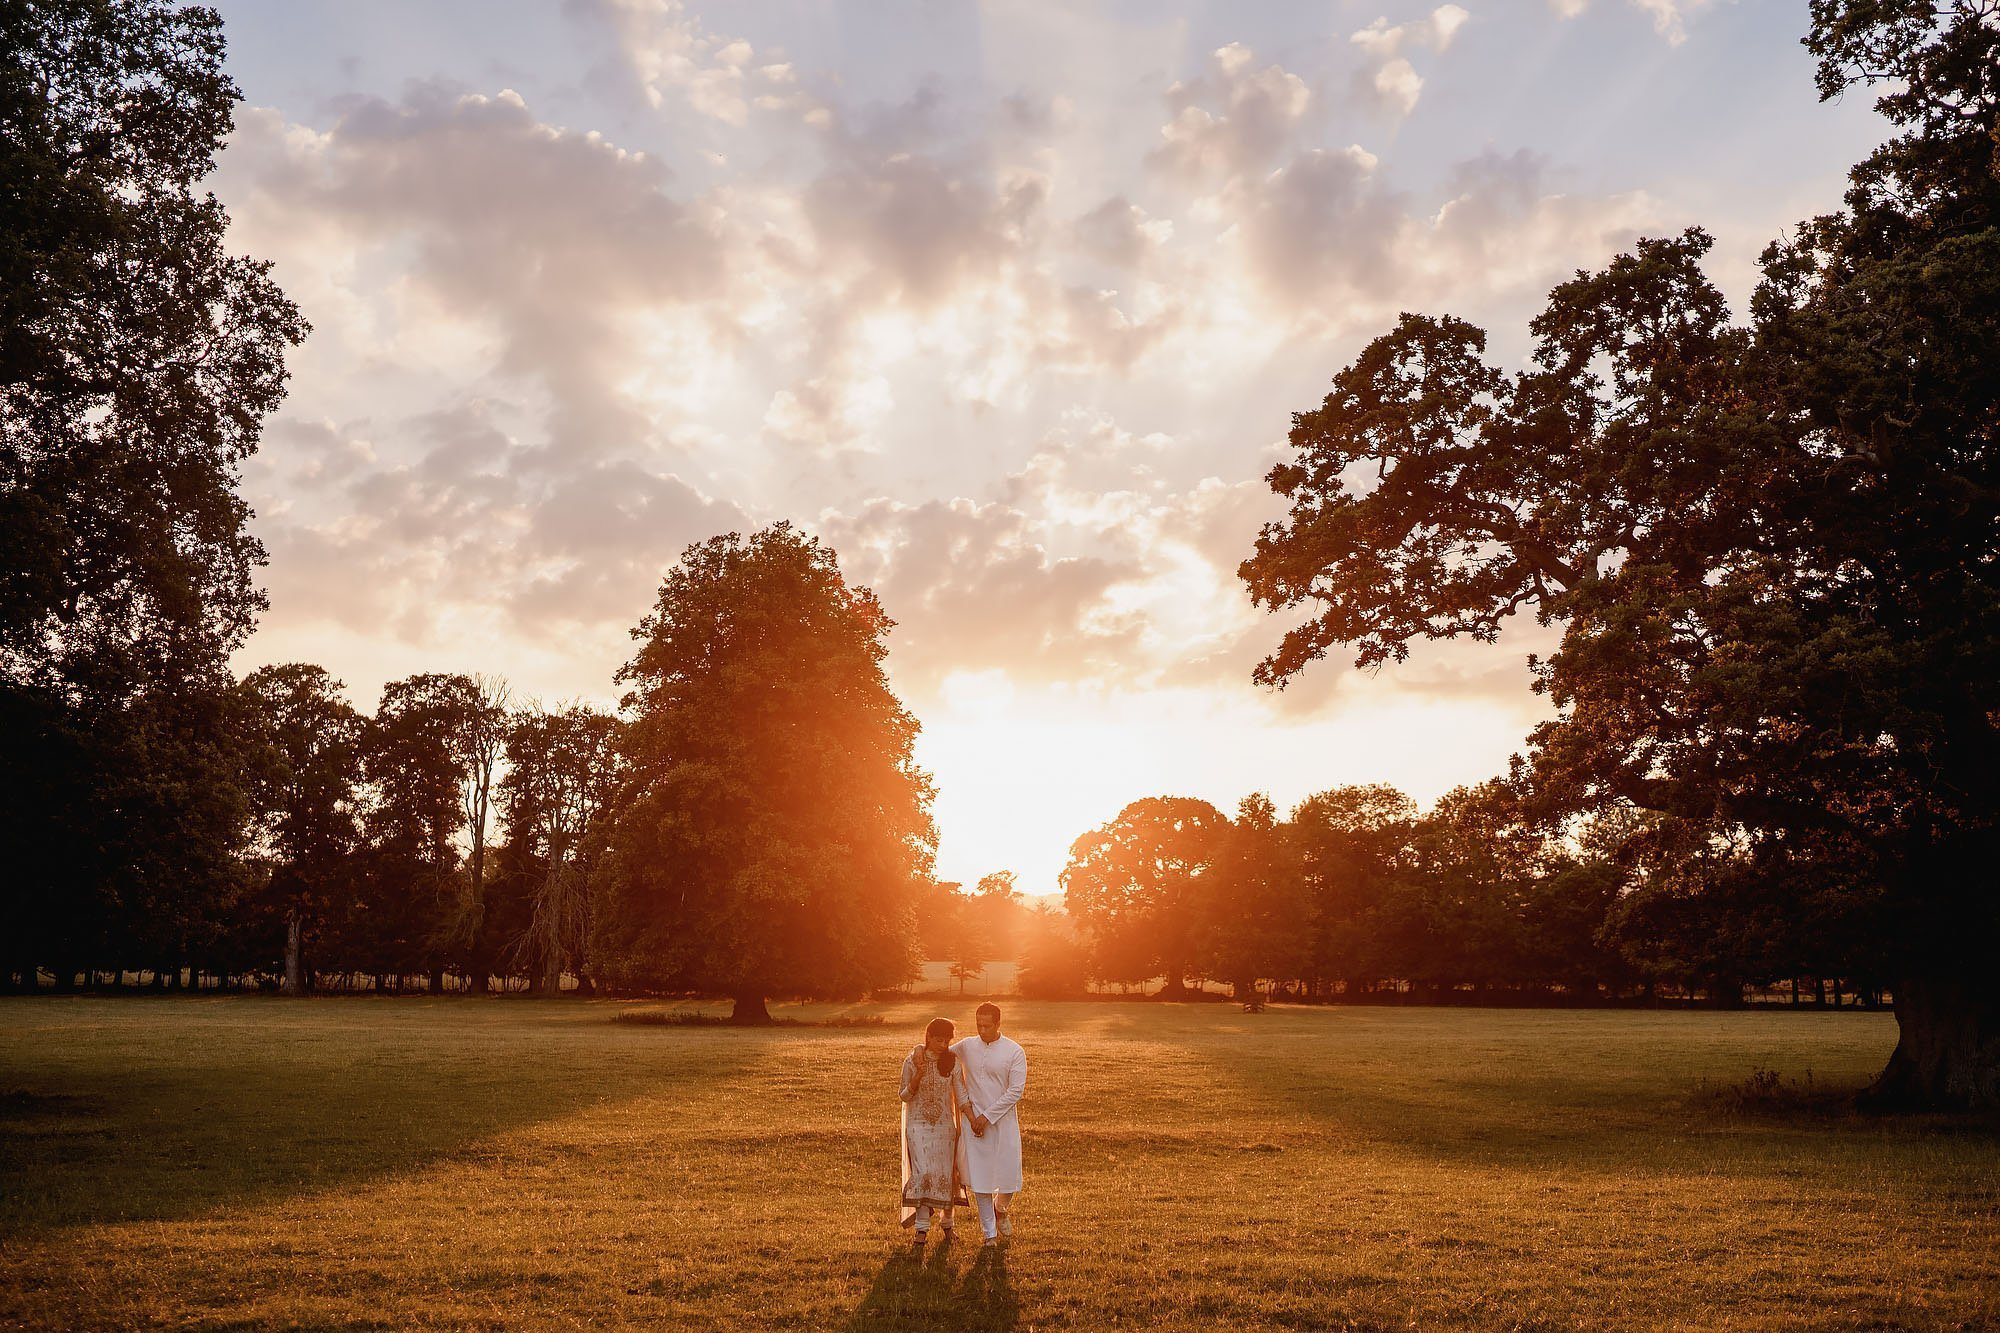 Bridwell Park Weddings - Photography at Bridwell Park Devon